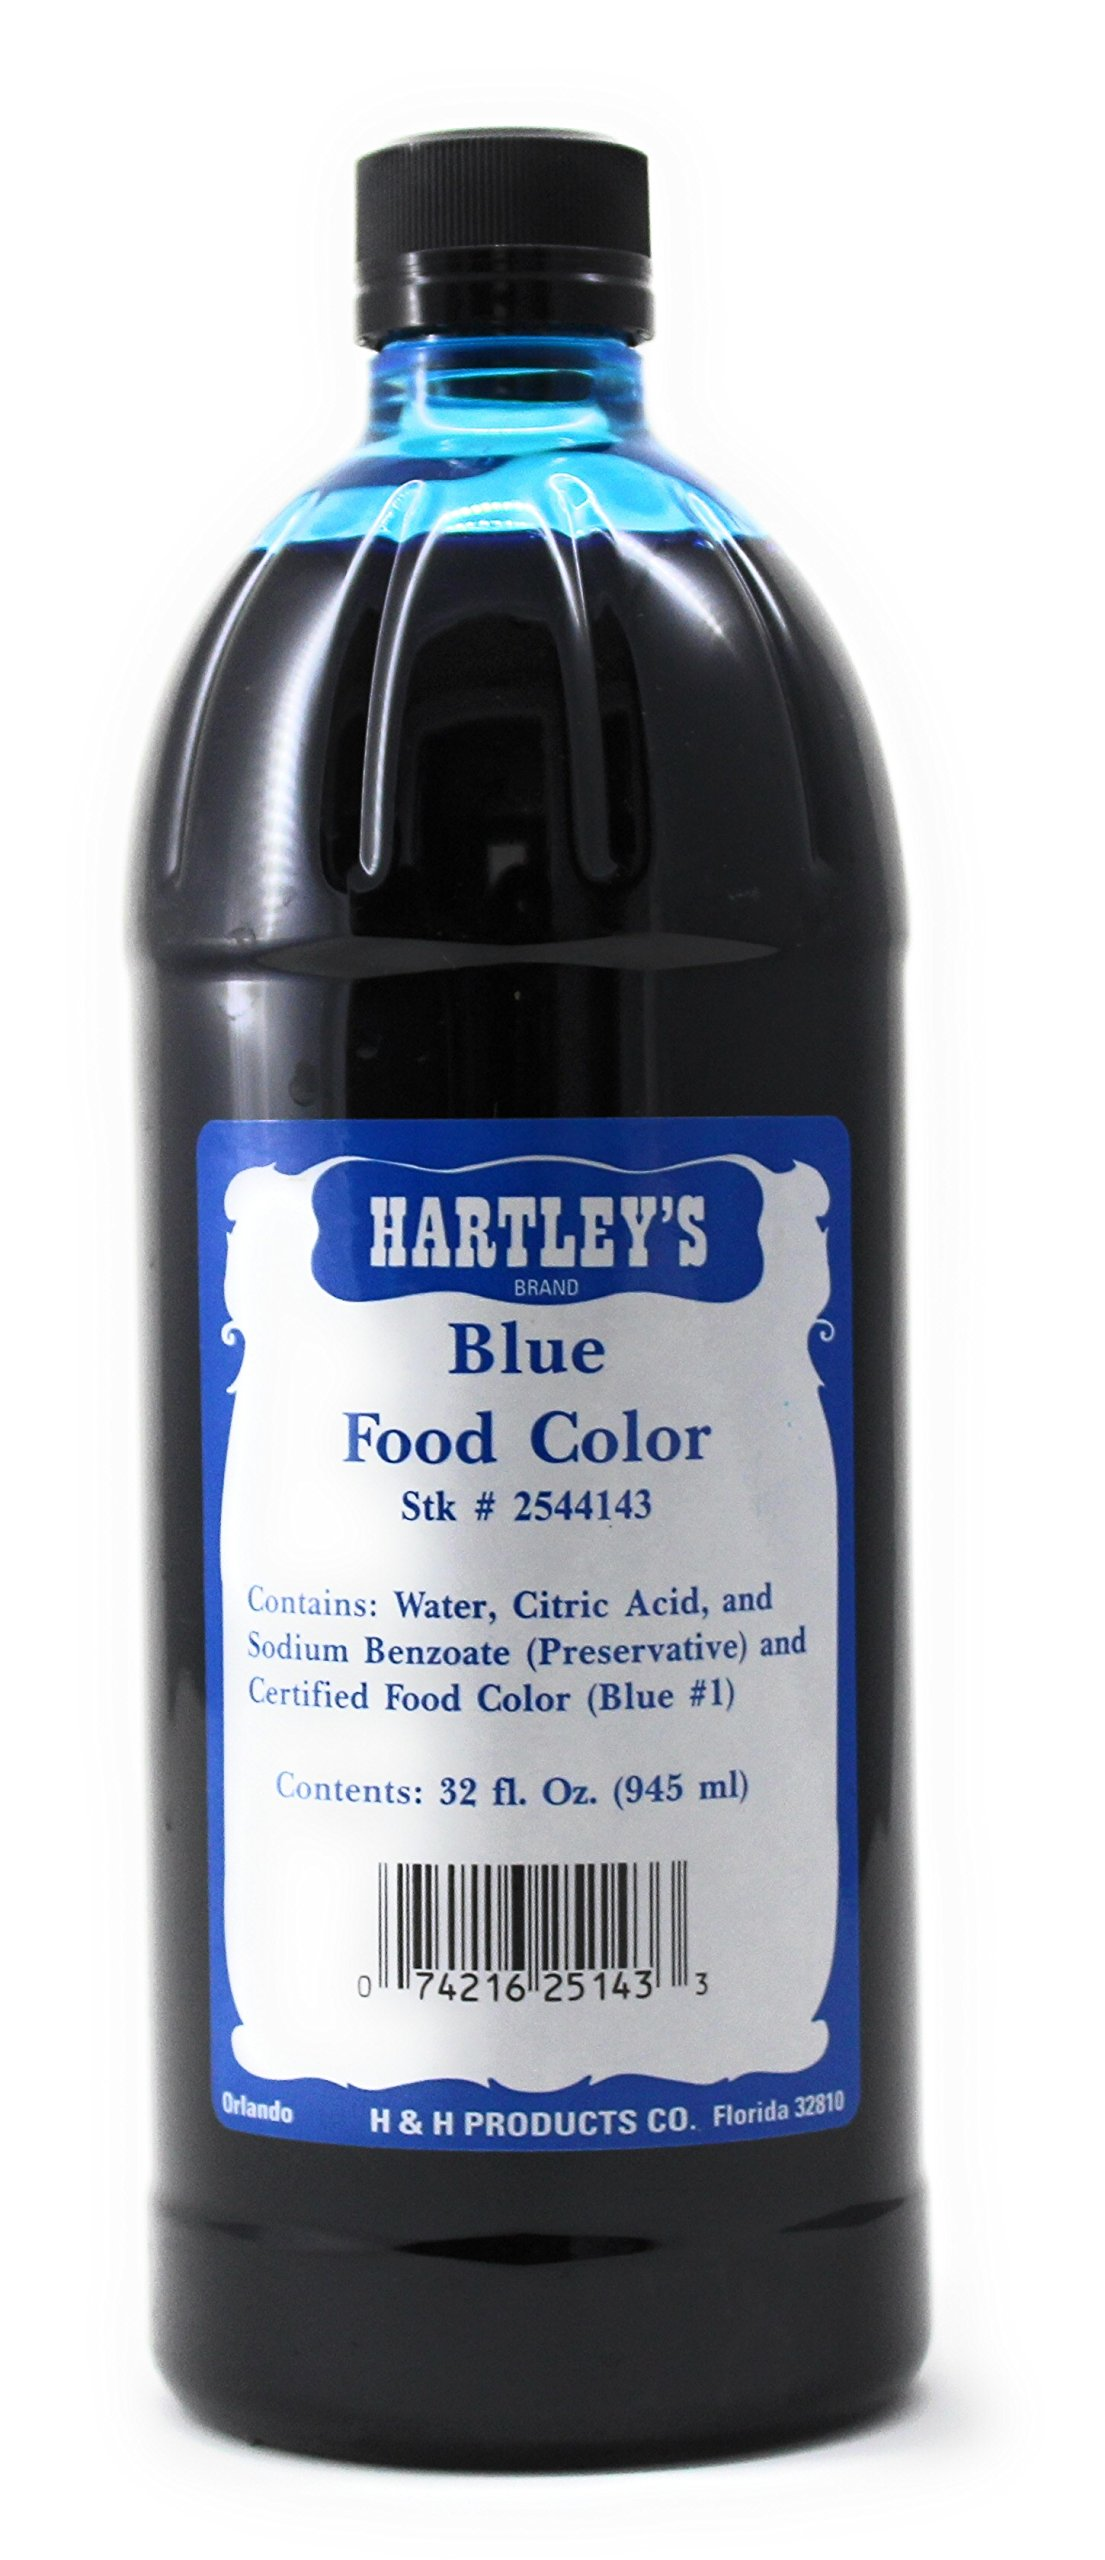 Blue Food Coloring - Hartley's Commercial Grade Professional Kitchen Blue Culinary Liquid Color 32 Oz ✡ OU Kosher